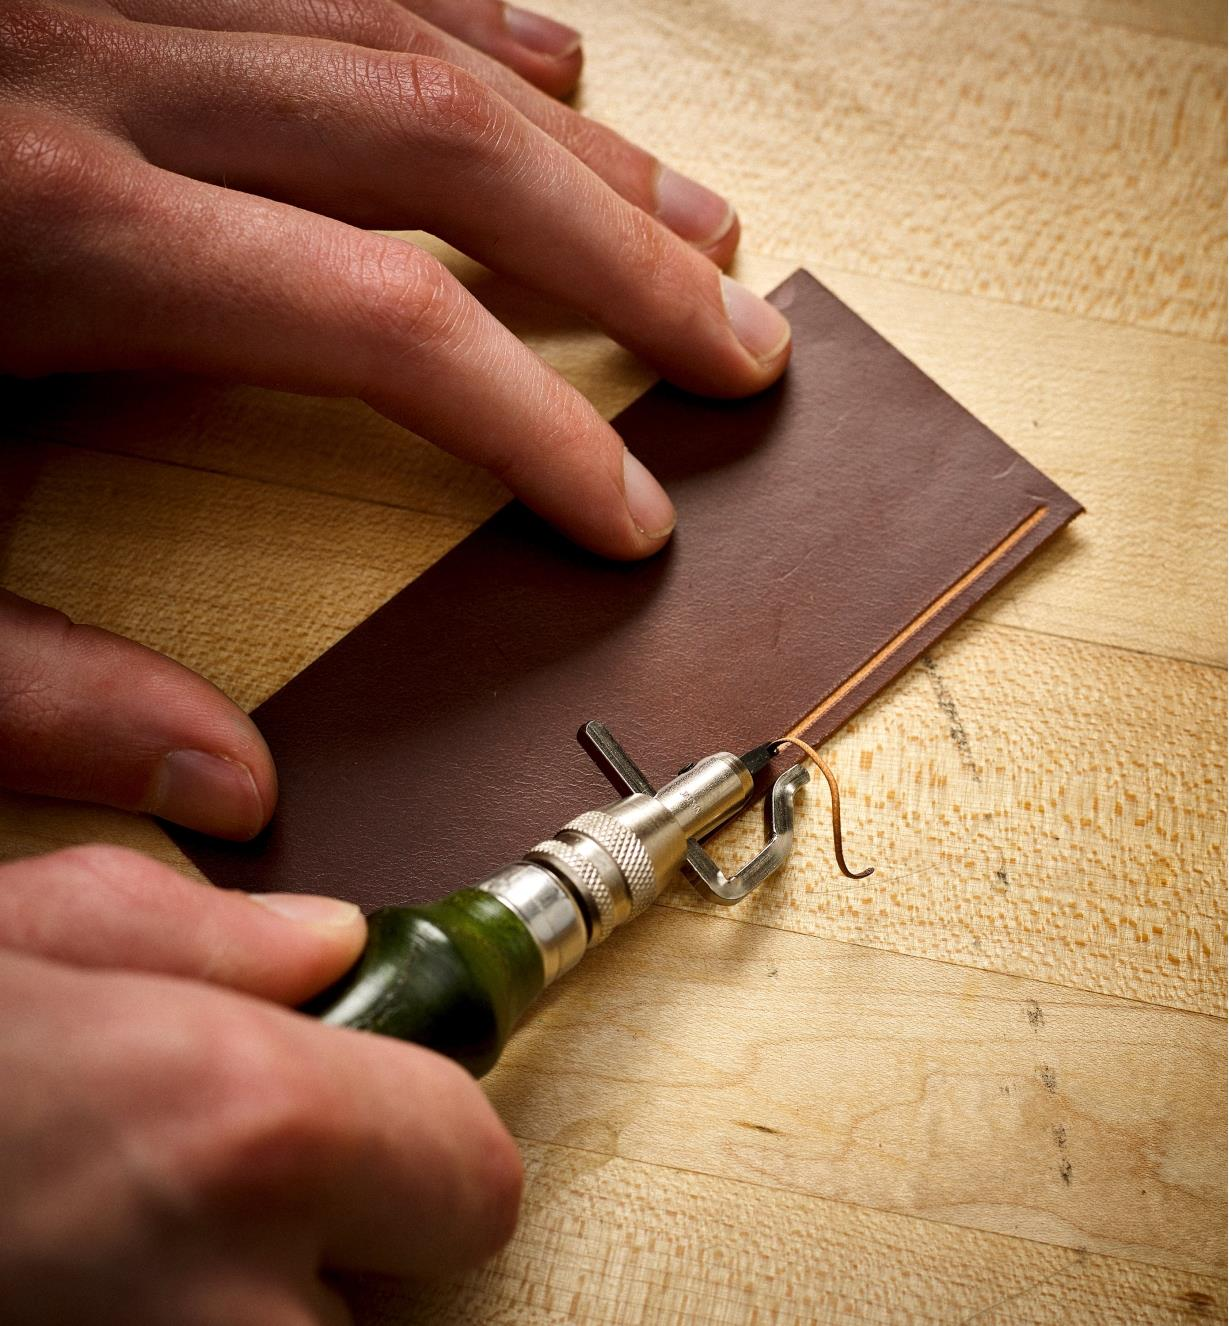 Using the Combination Groover/Creaser to cut a groove in leather